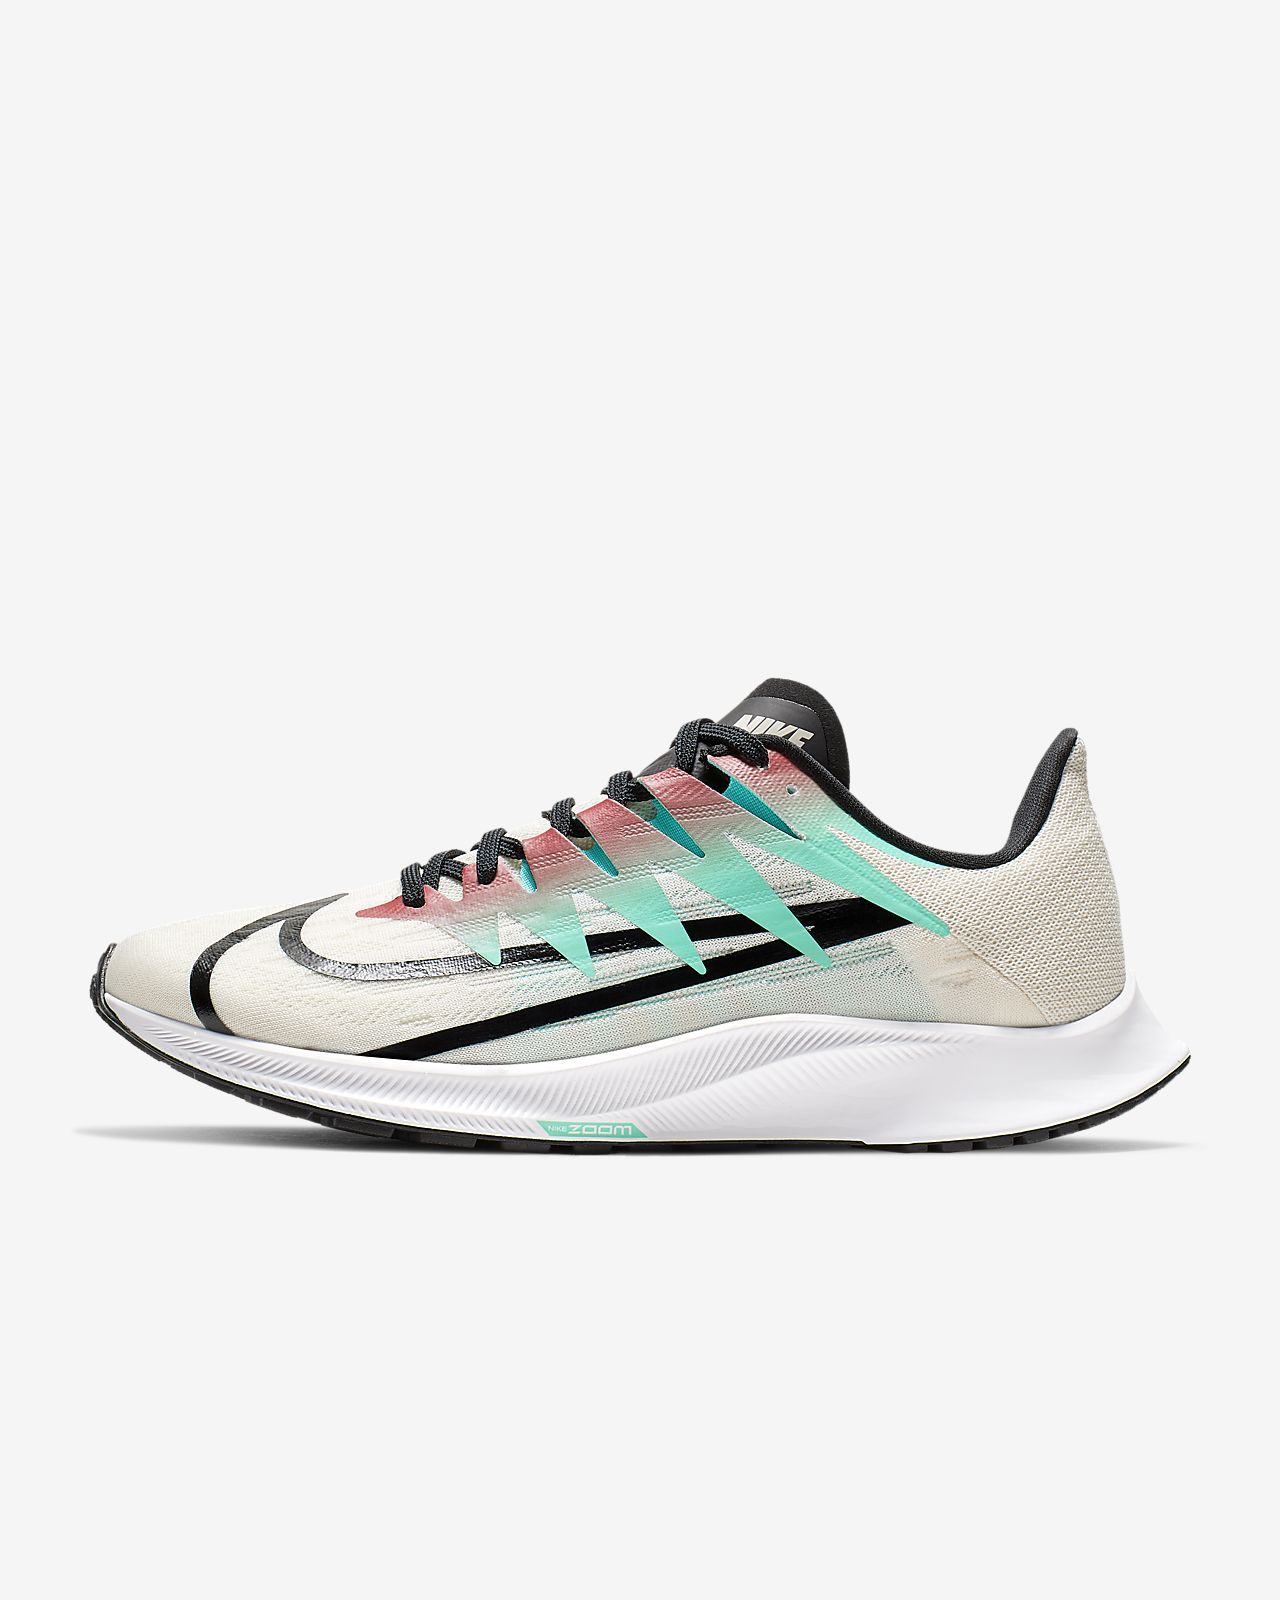 quality design 019f7 defc5 Nike Zoom Rival Fly Women's Running Shoe